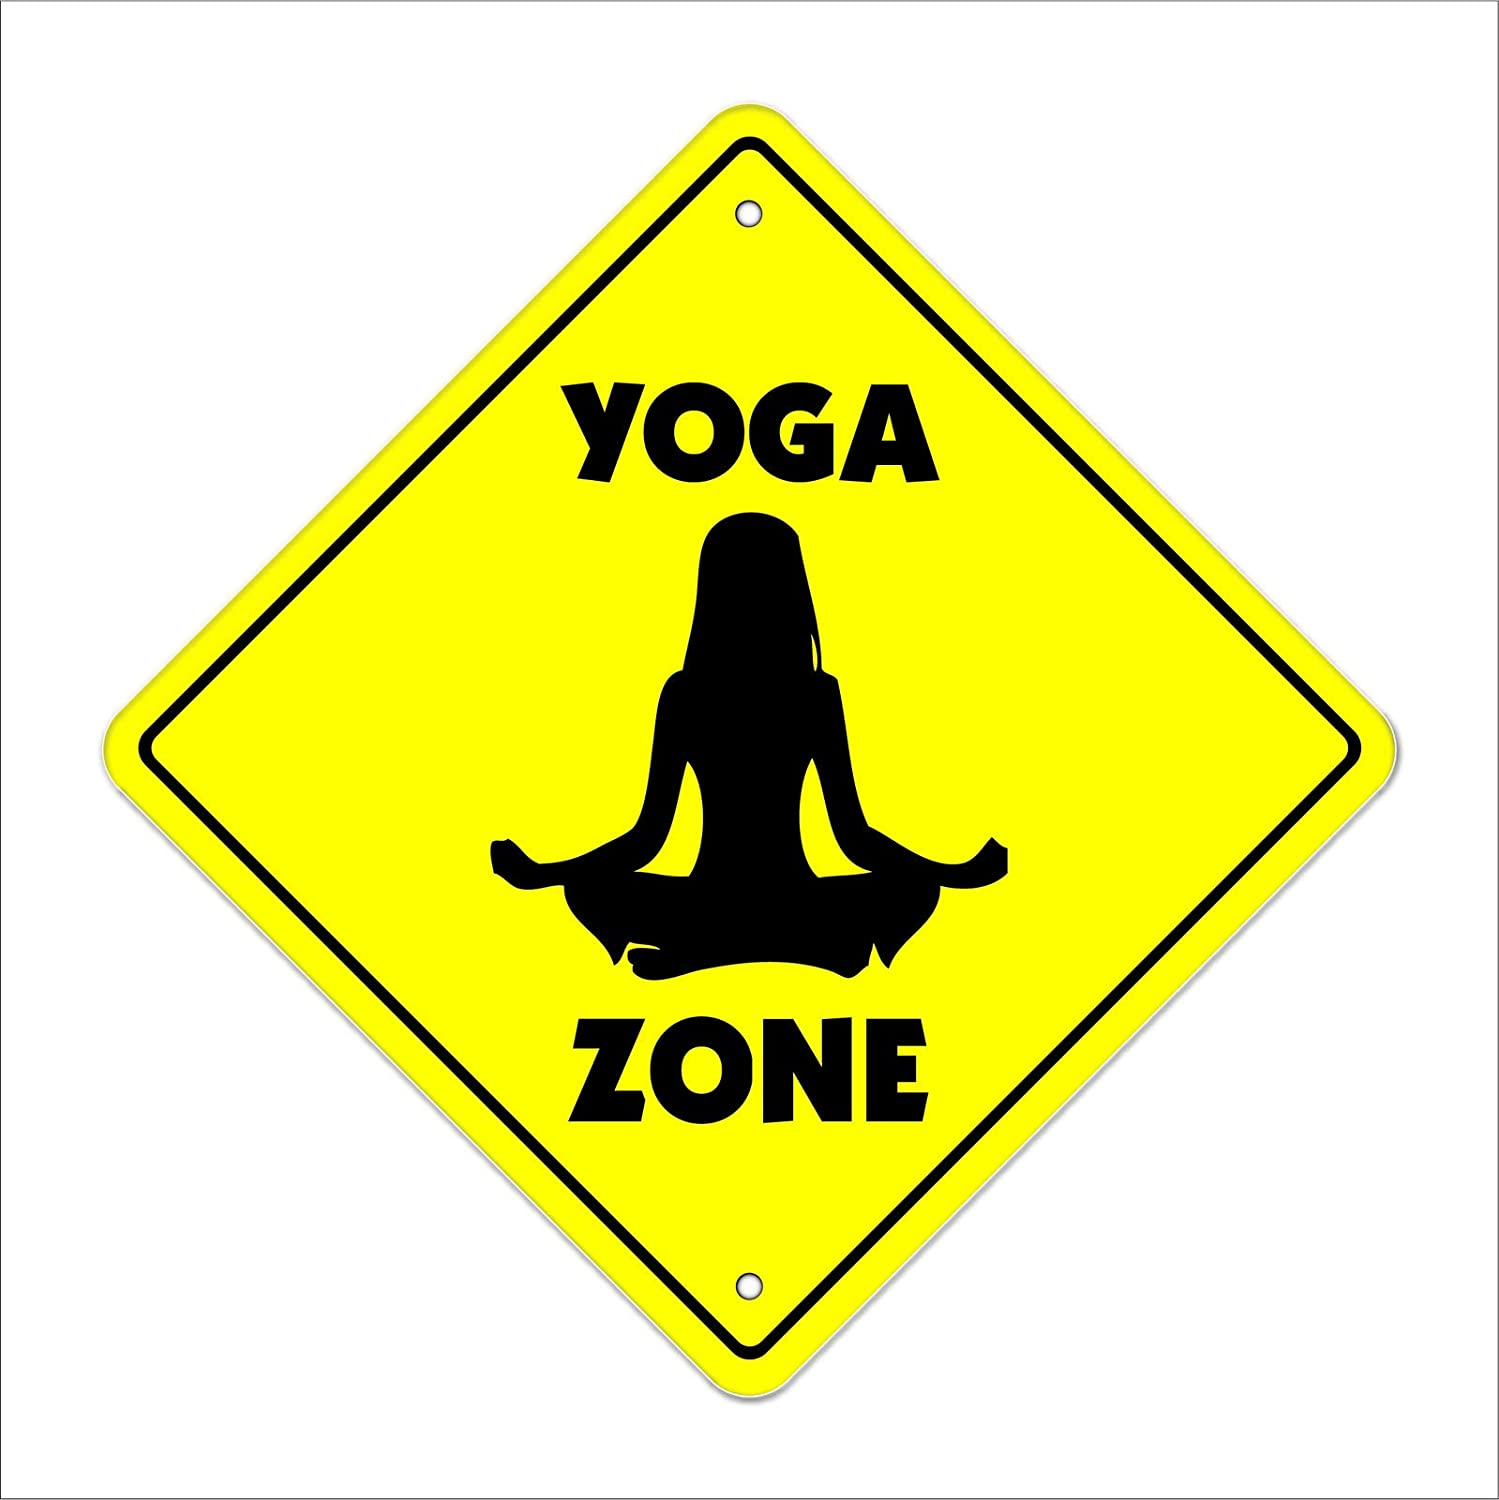 Amazon Com Cortan360 Yoga Crossing Sign Zone Xing 8 Meditate Zen Mat Relaxation Relax Teacher Instr Sticker Decal Home Kitchen